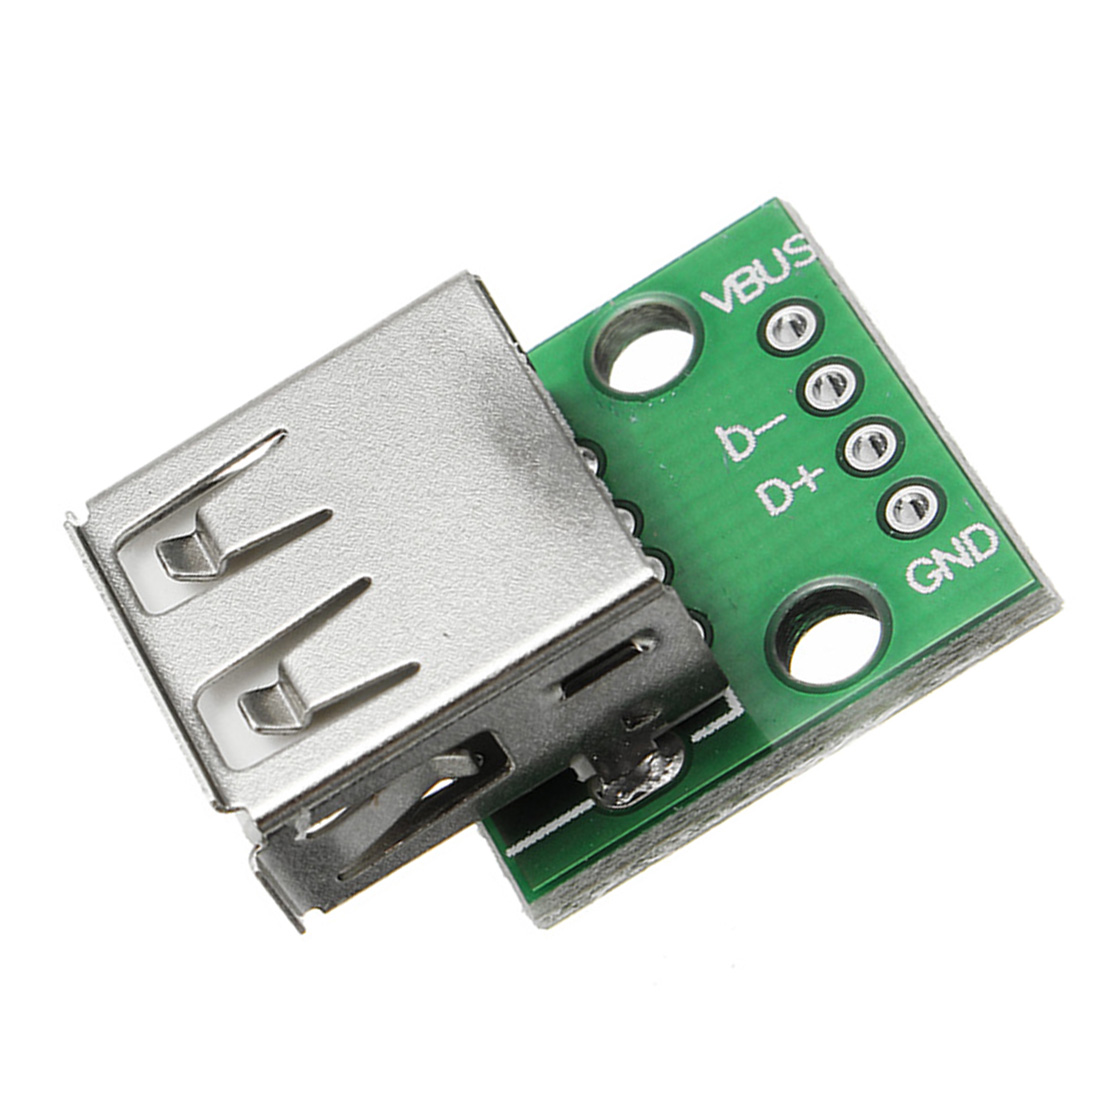 1/5/10 Pcs USB 2.0 Female Head Socket To DIP 2.54mm Pin 4P Switching Module For Phone USB Cable Plugboard